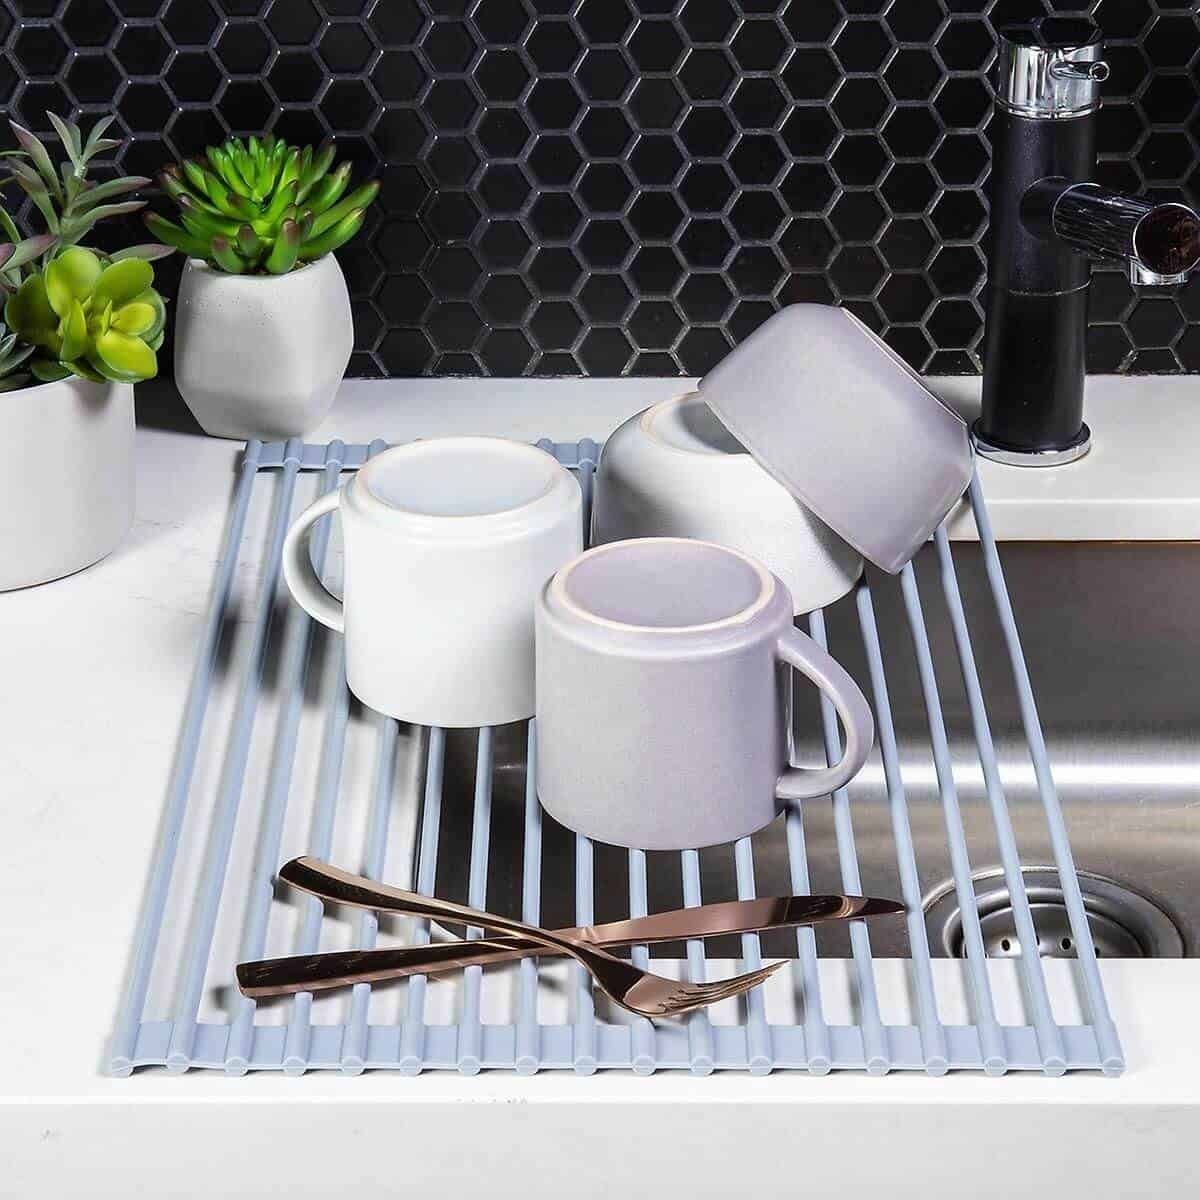 Roll-up drying rack on top of a sink with mugs, bowls, and tableware on it.